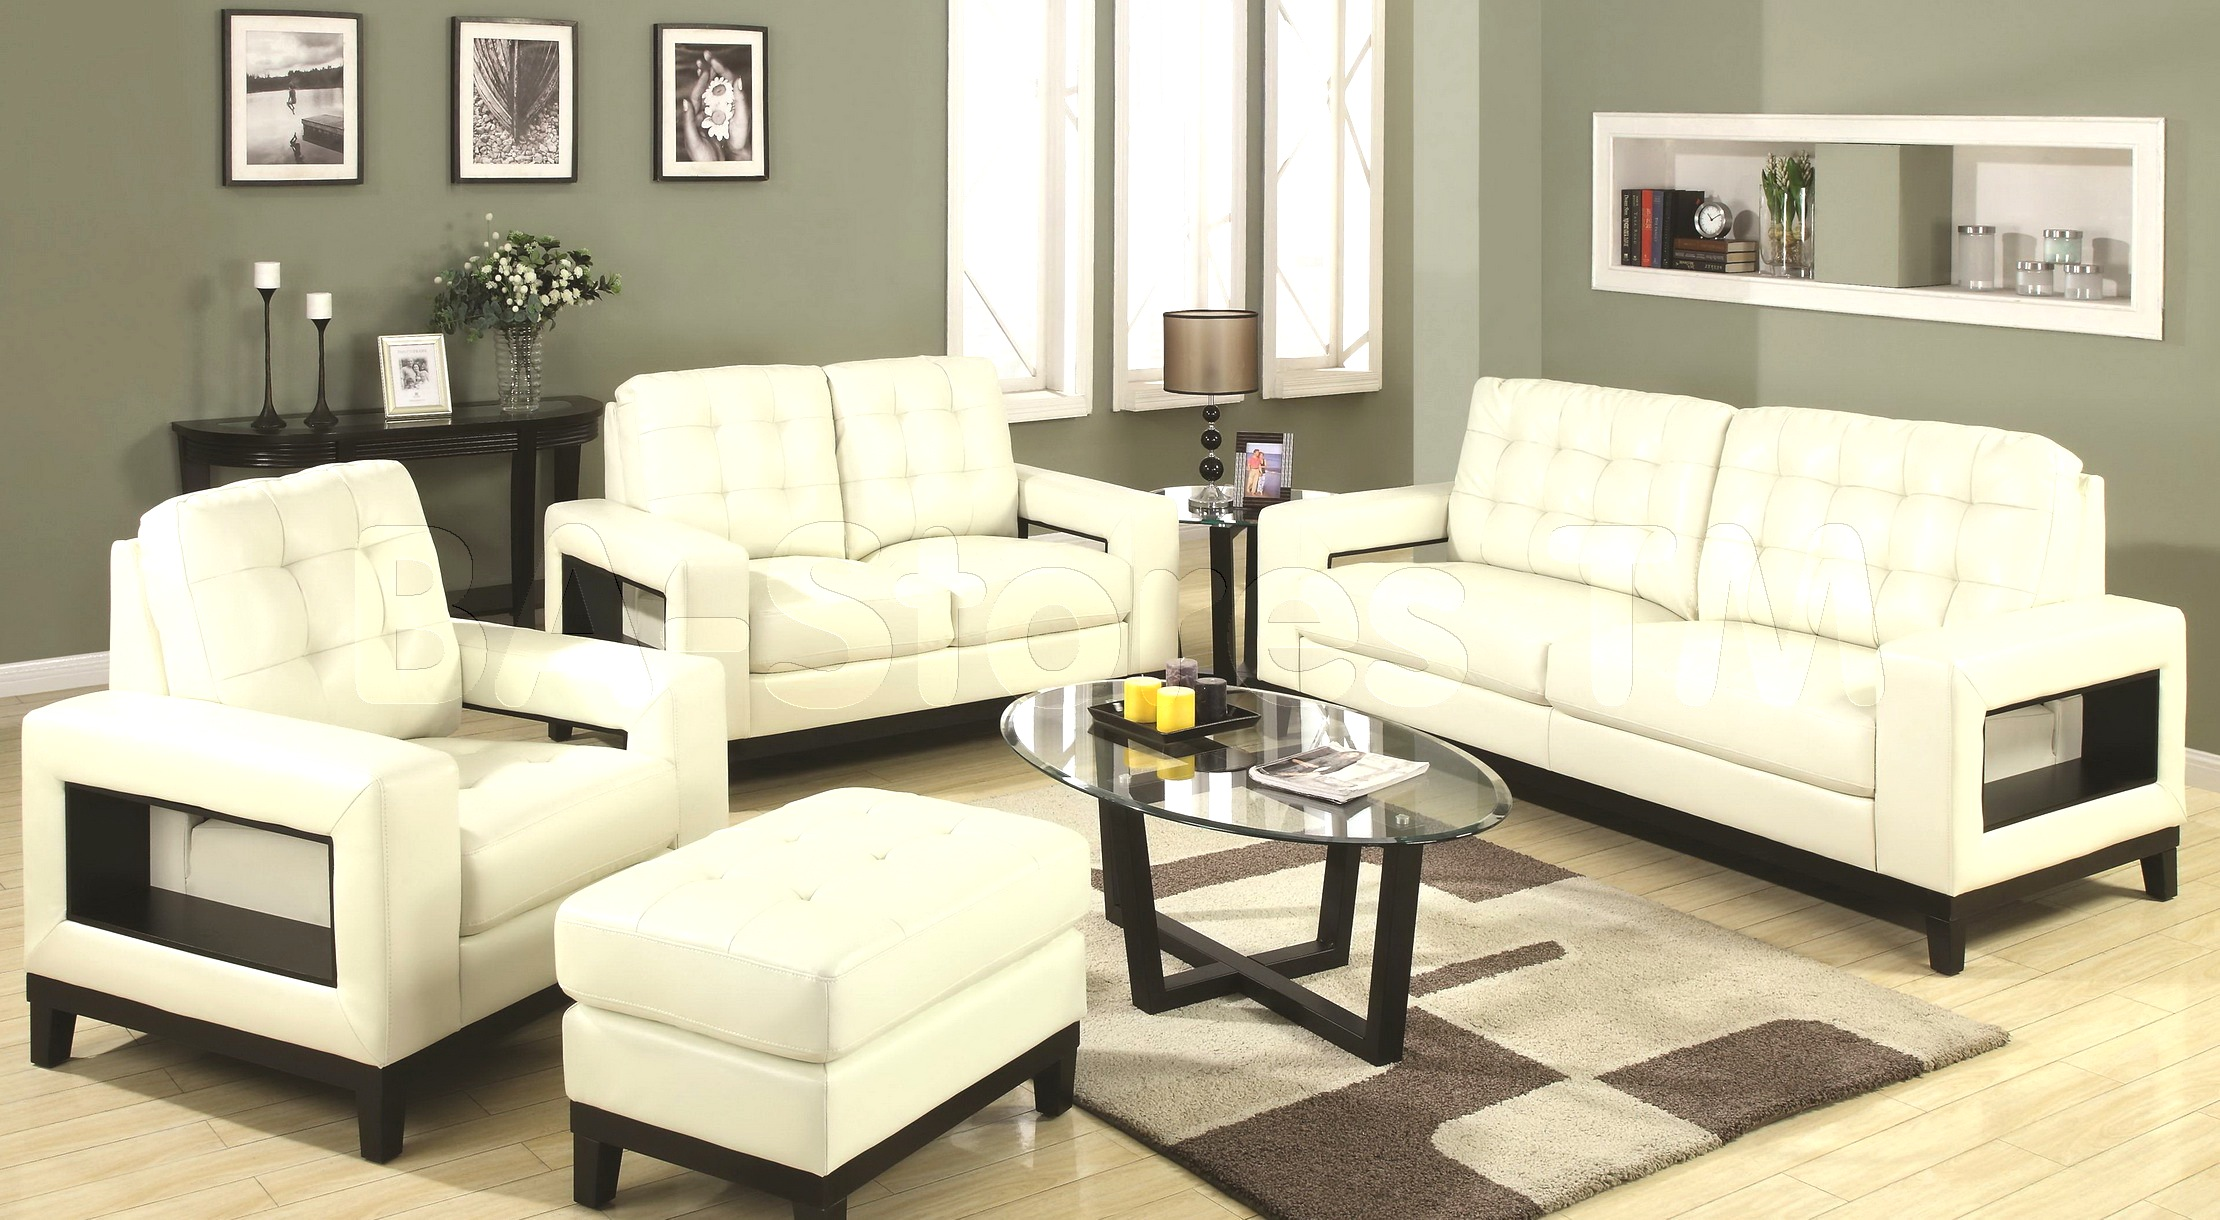 Sofa set in living room for Hall furniture design sofa set